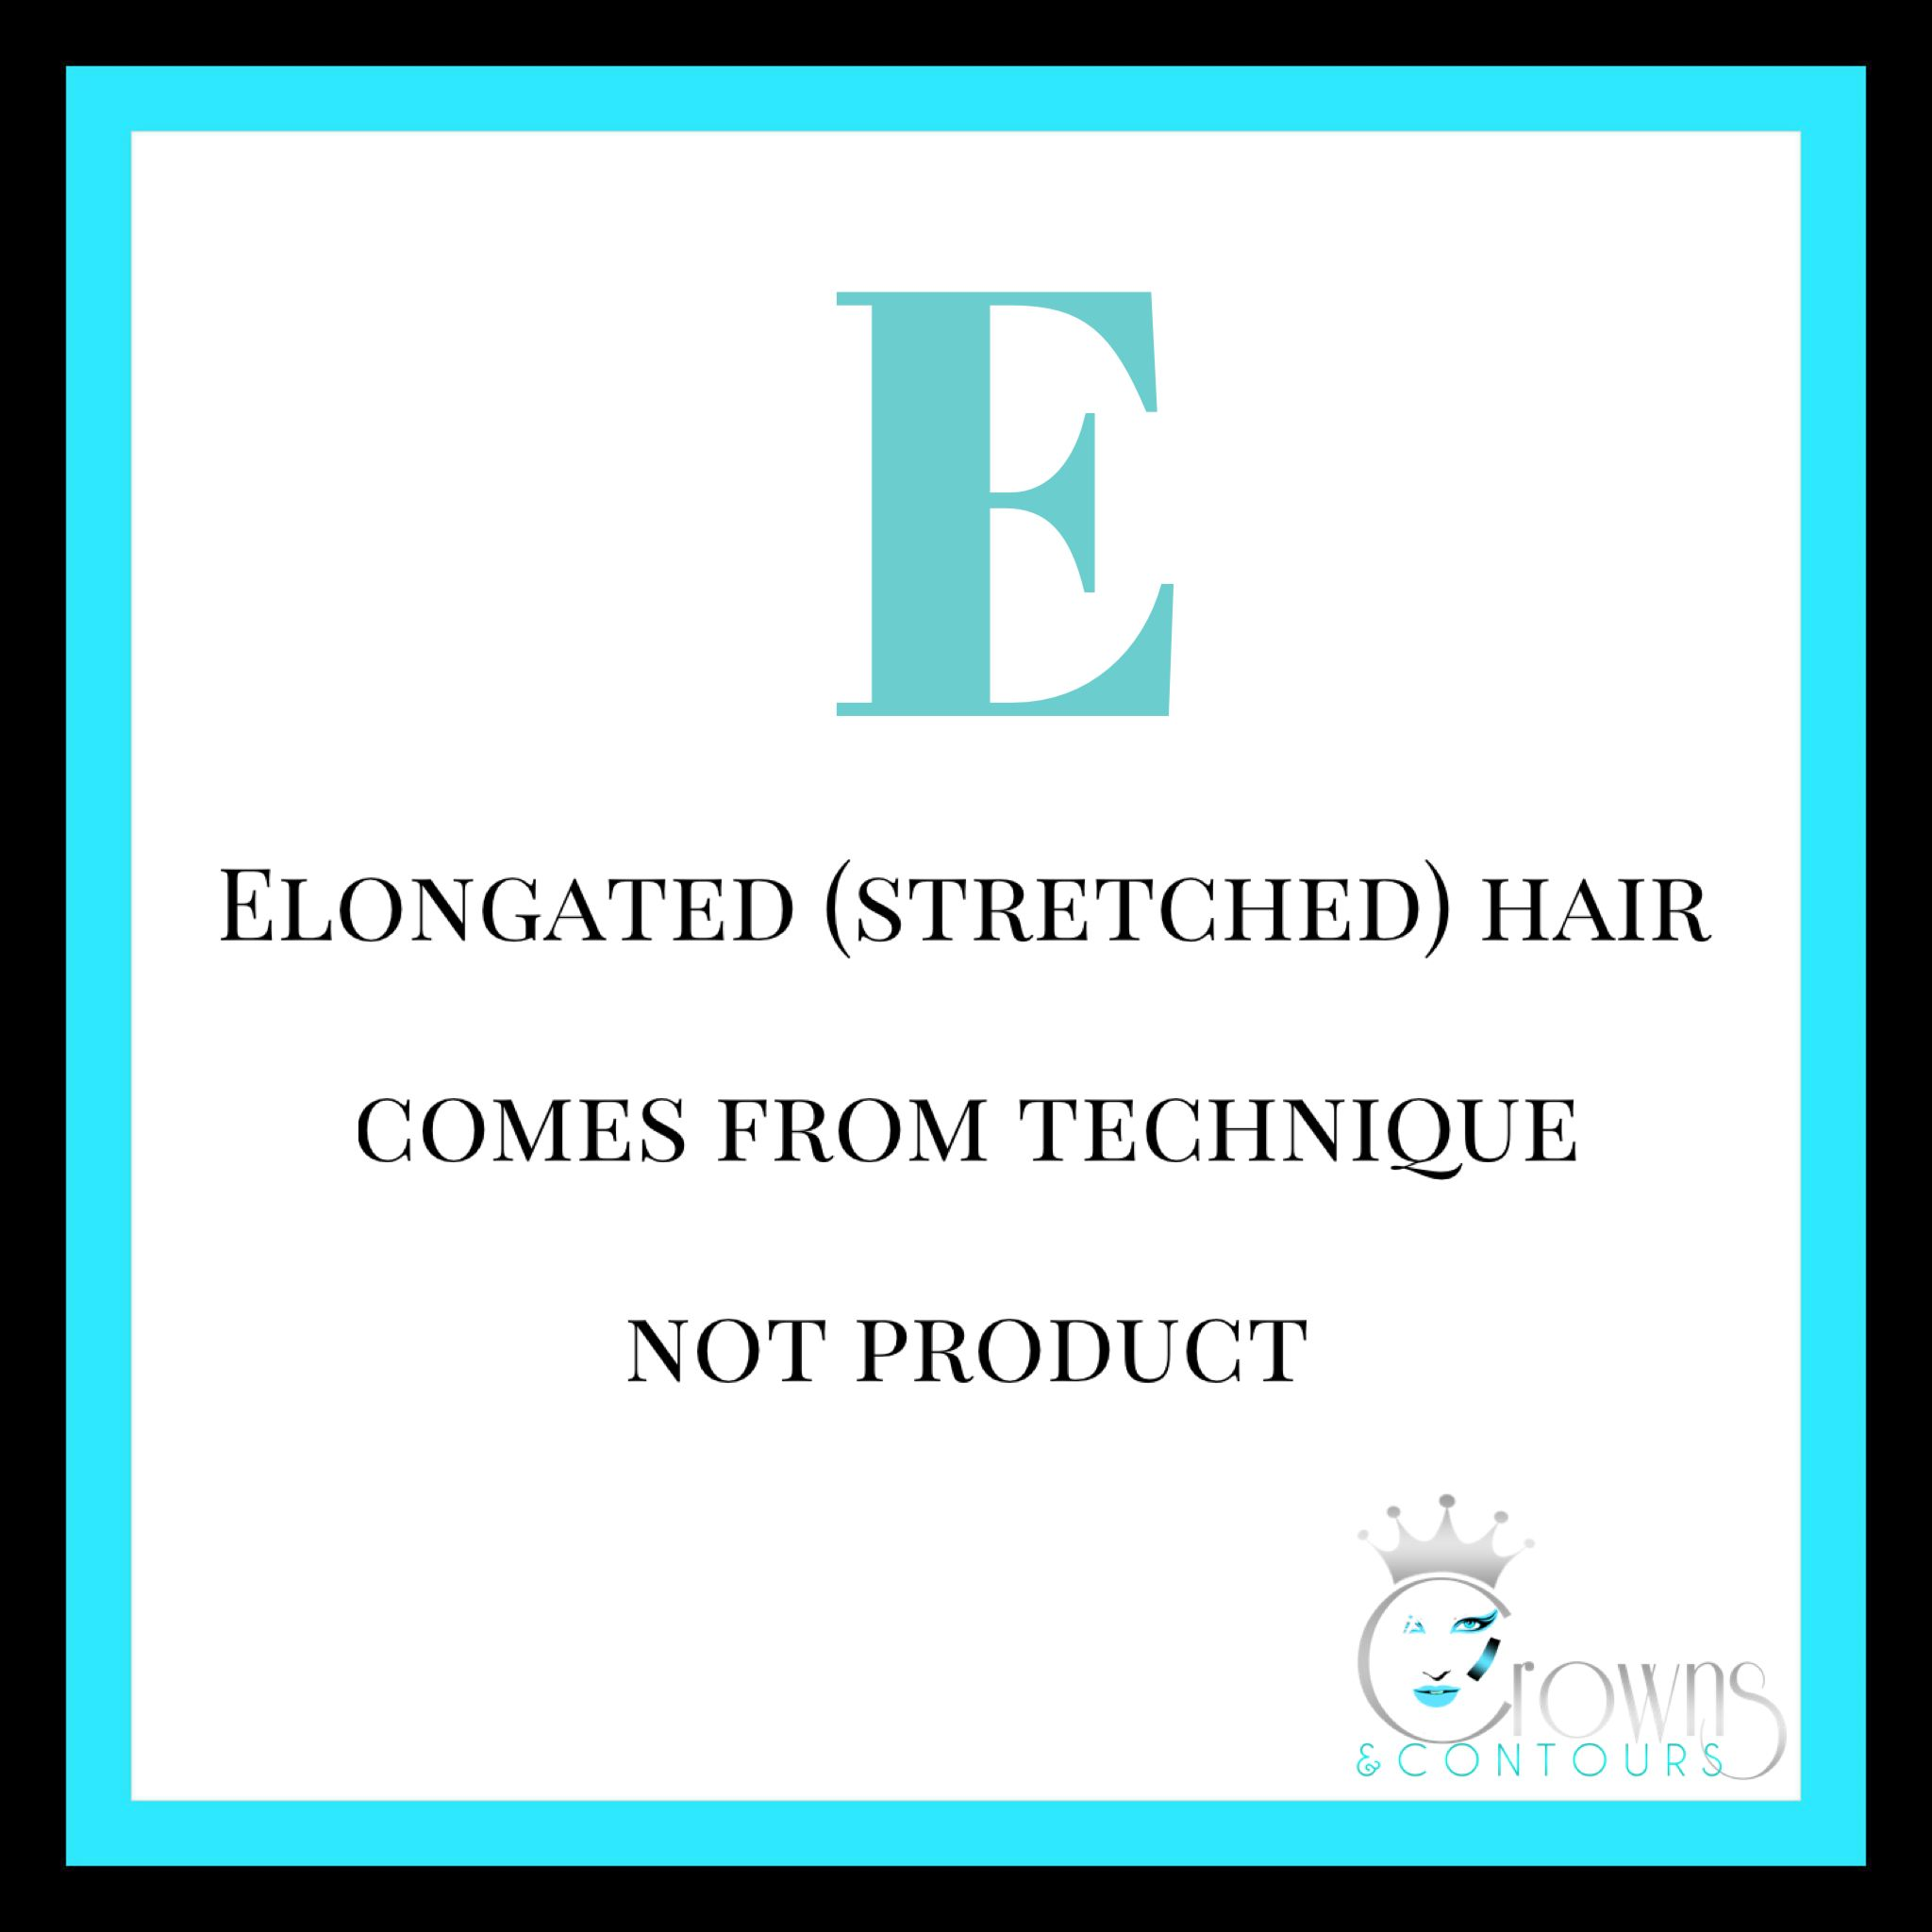 Be wary of products that promise elongated curls as they